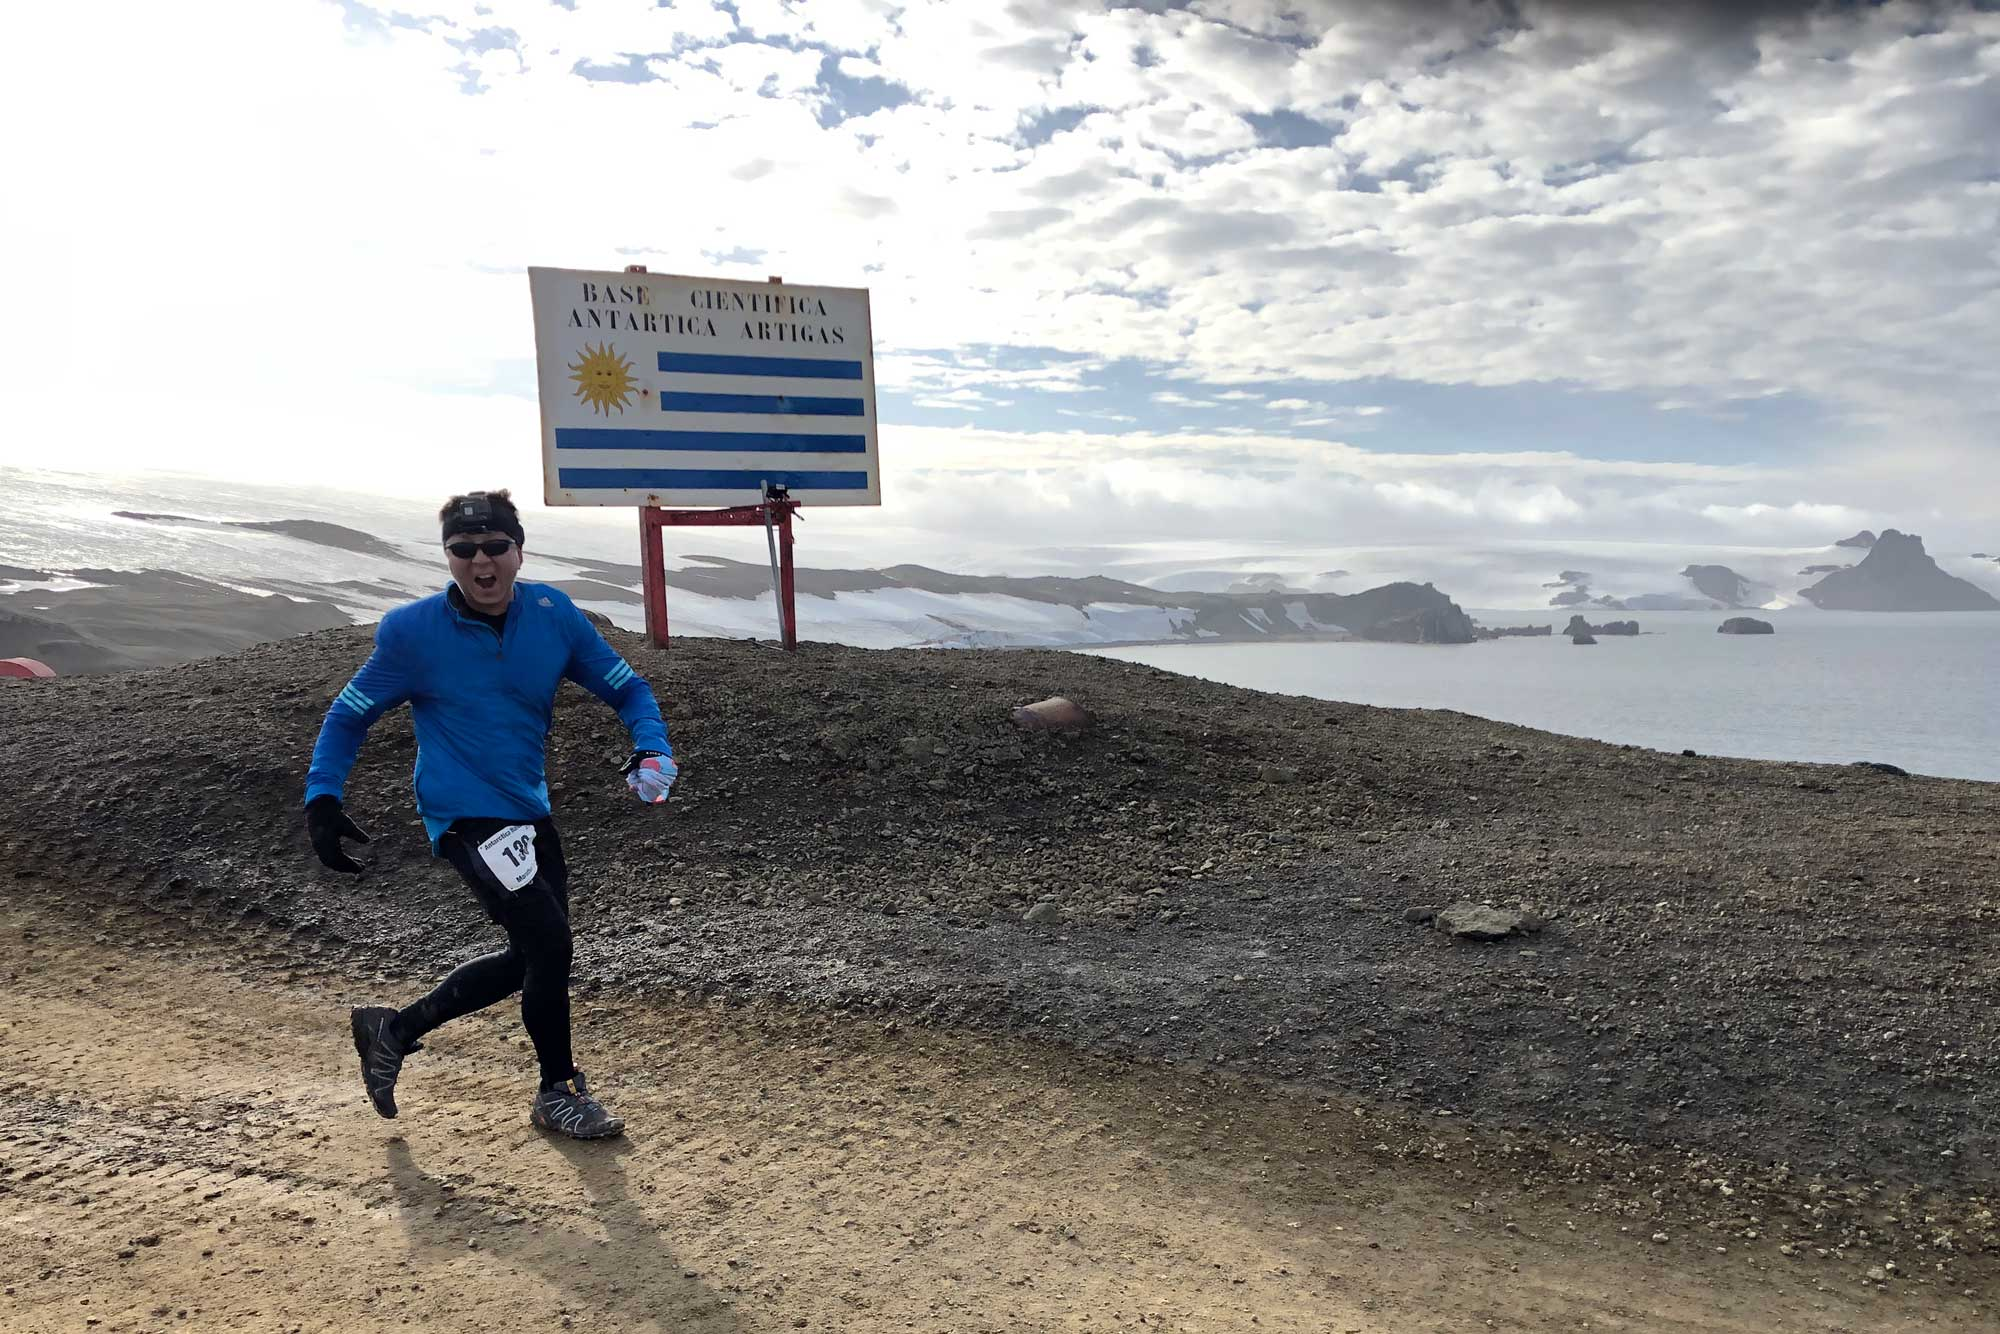 Halef running past the Uruguay Base sign